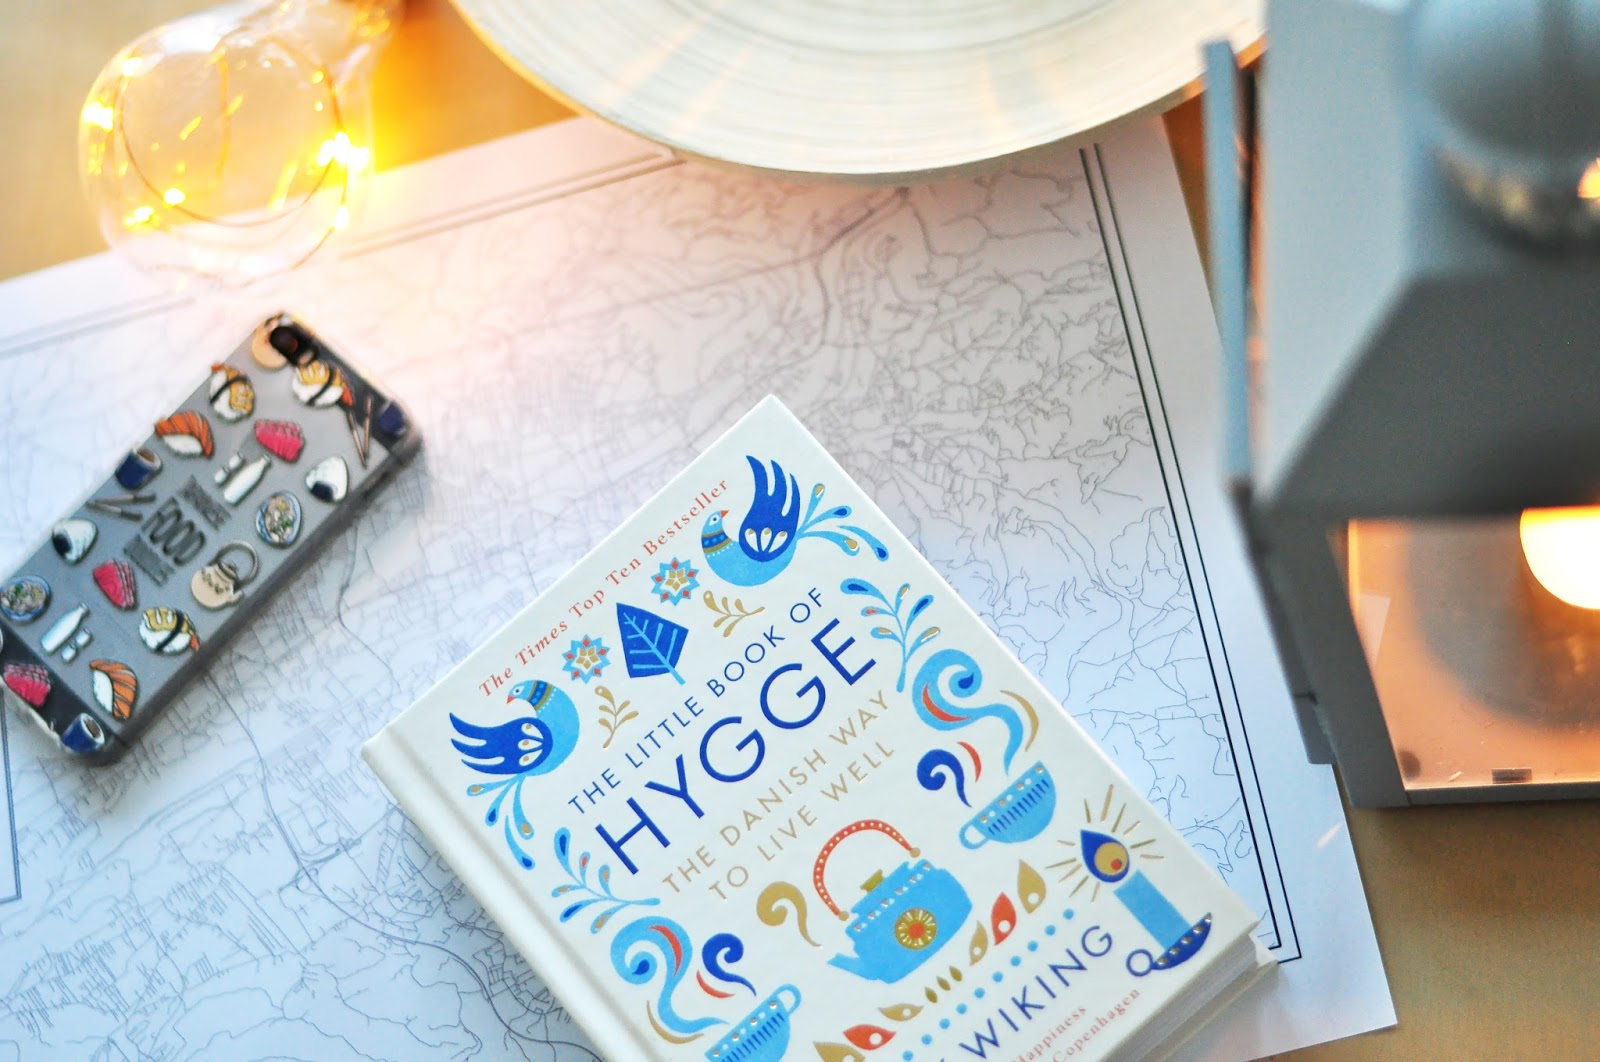 My 5 tips for how to achieve hygge mood at home